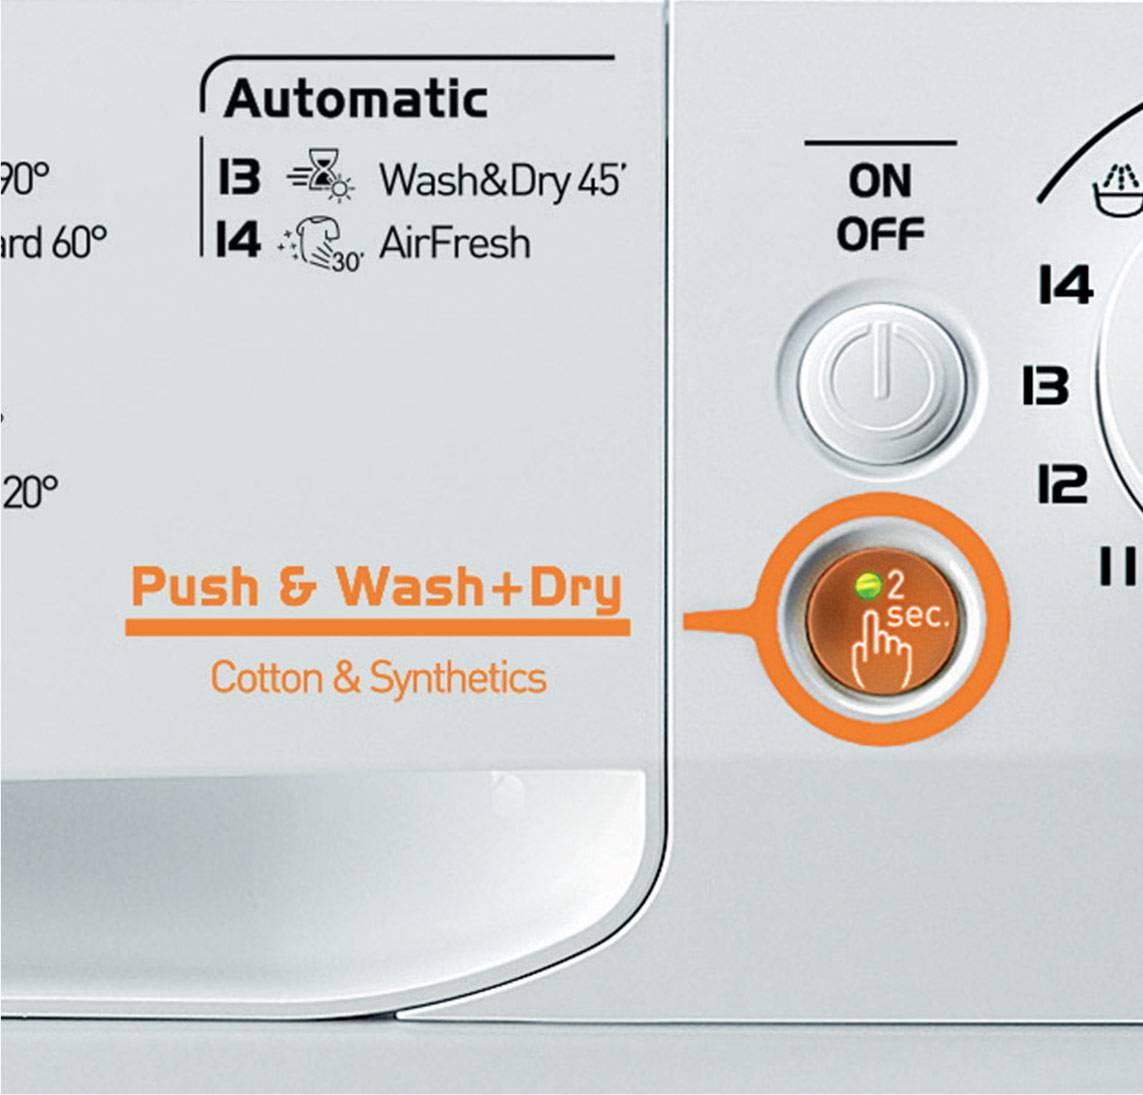 Freestanding Washer Dryer Washing Ready In 45 Minutes